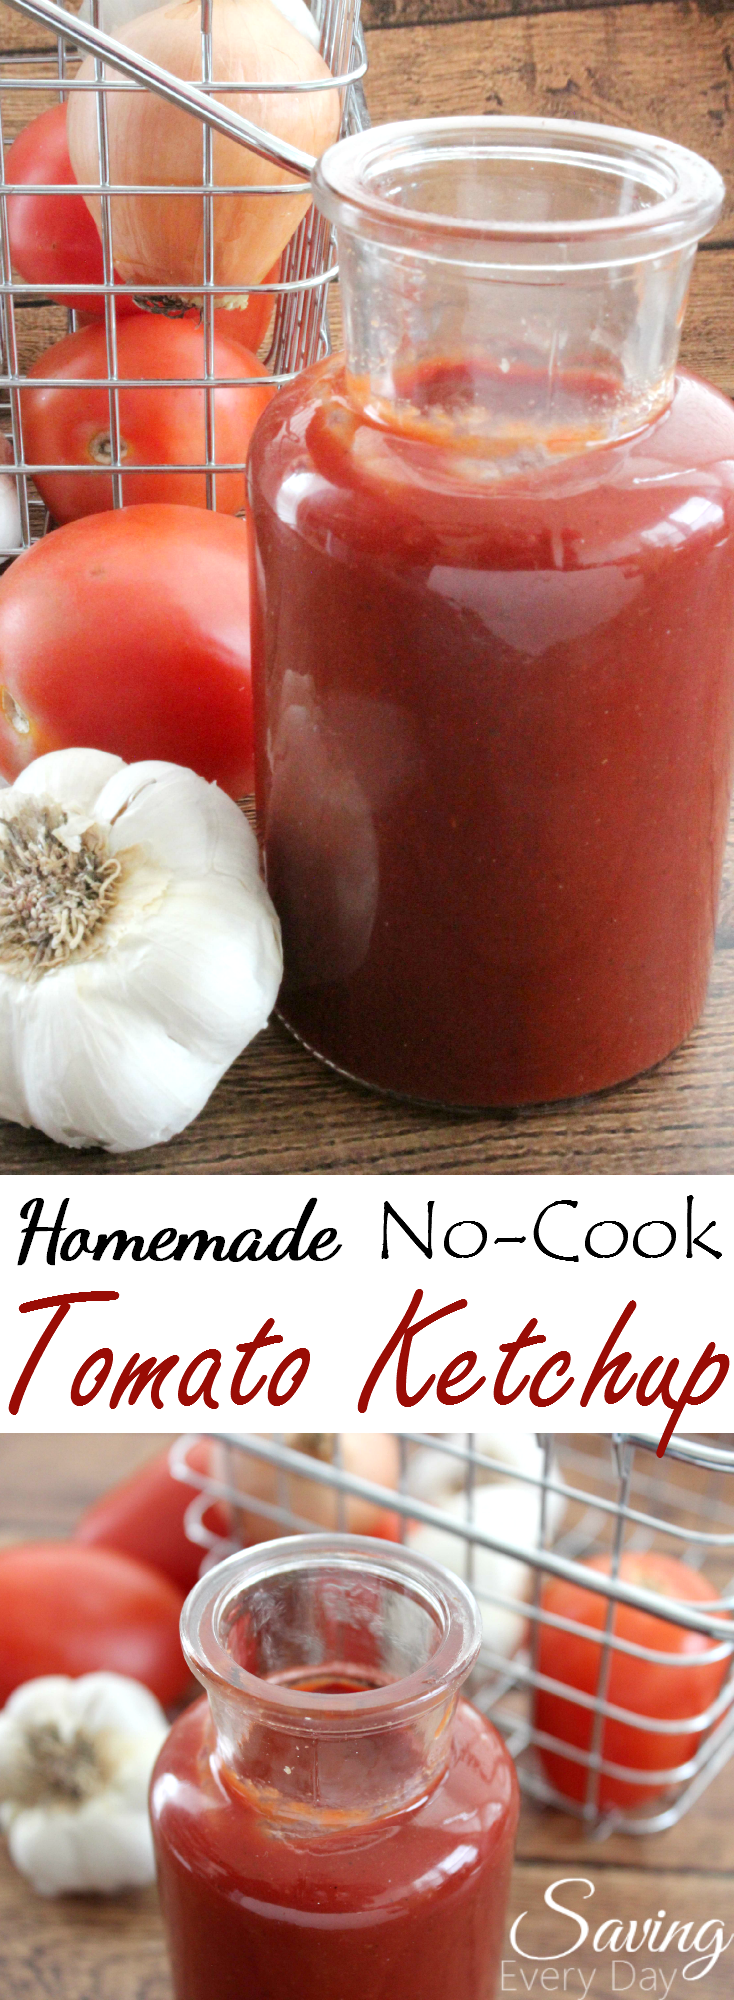 Discussion on this topic: Homemade Healthy Ketchup, homemade-healthy-ketchup/